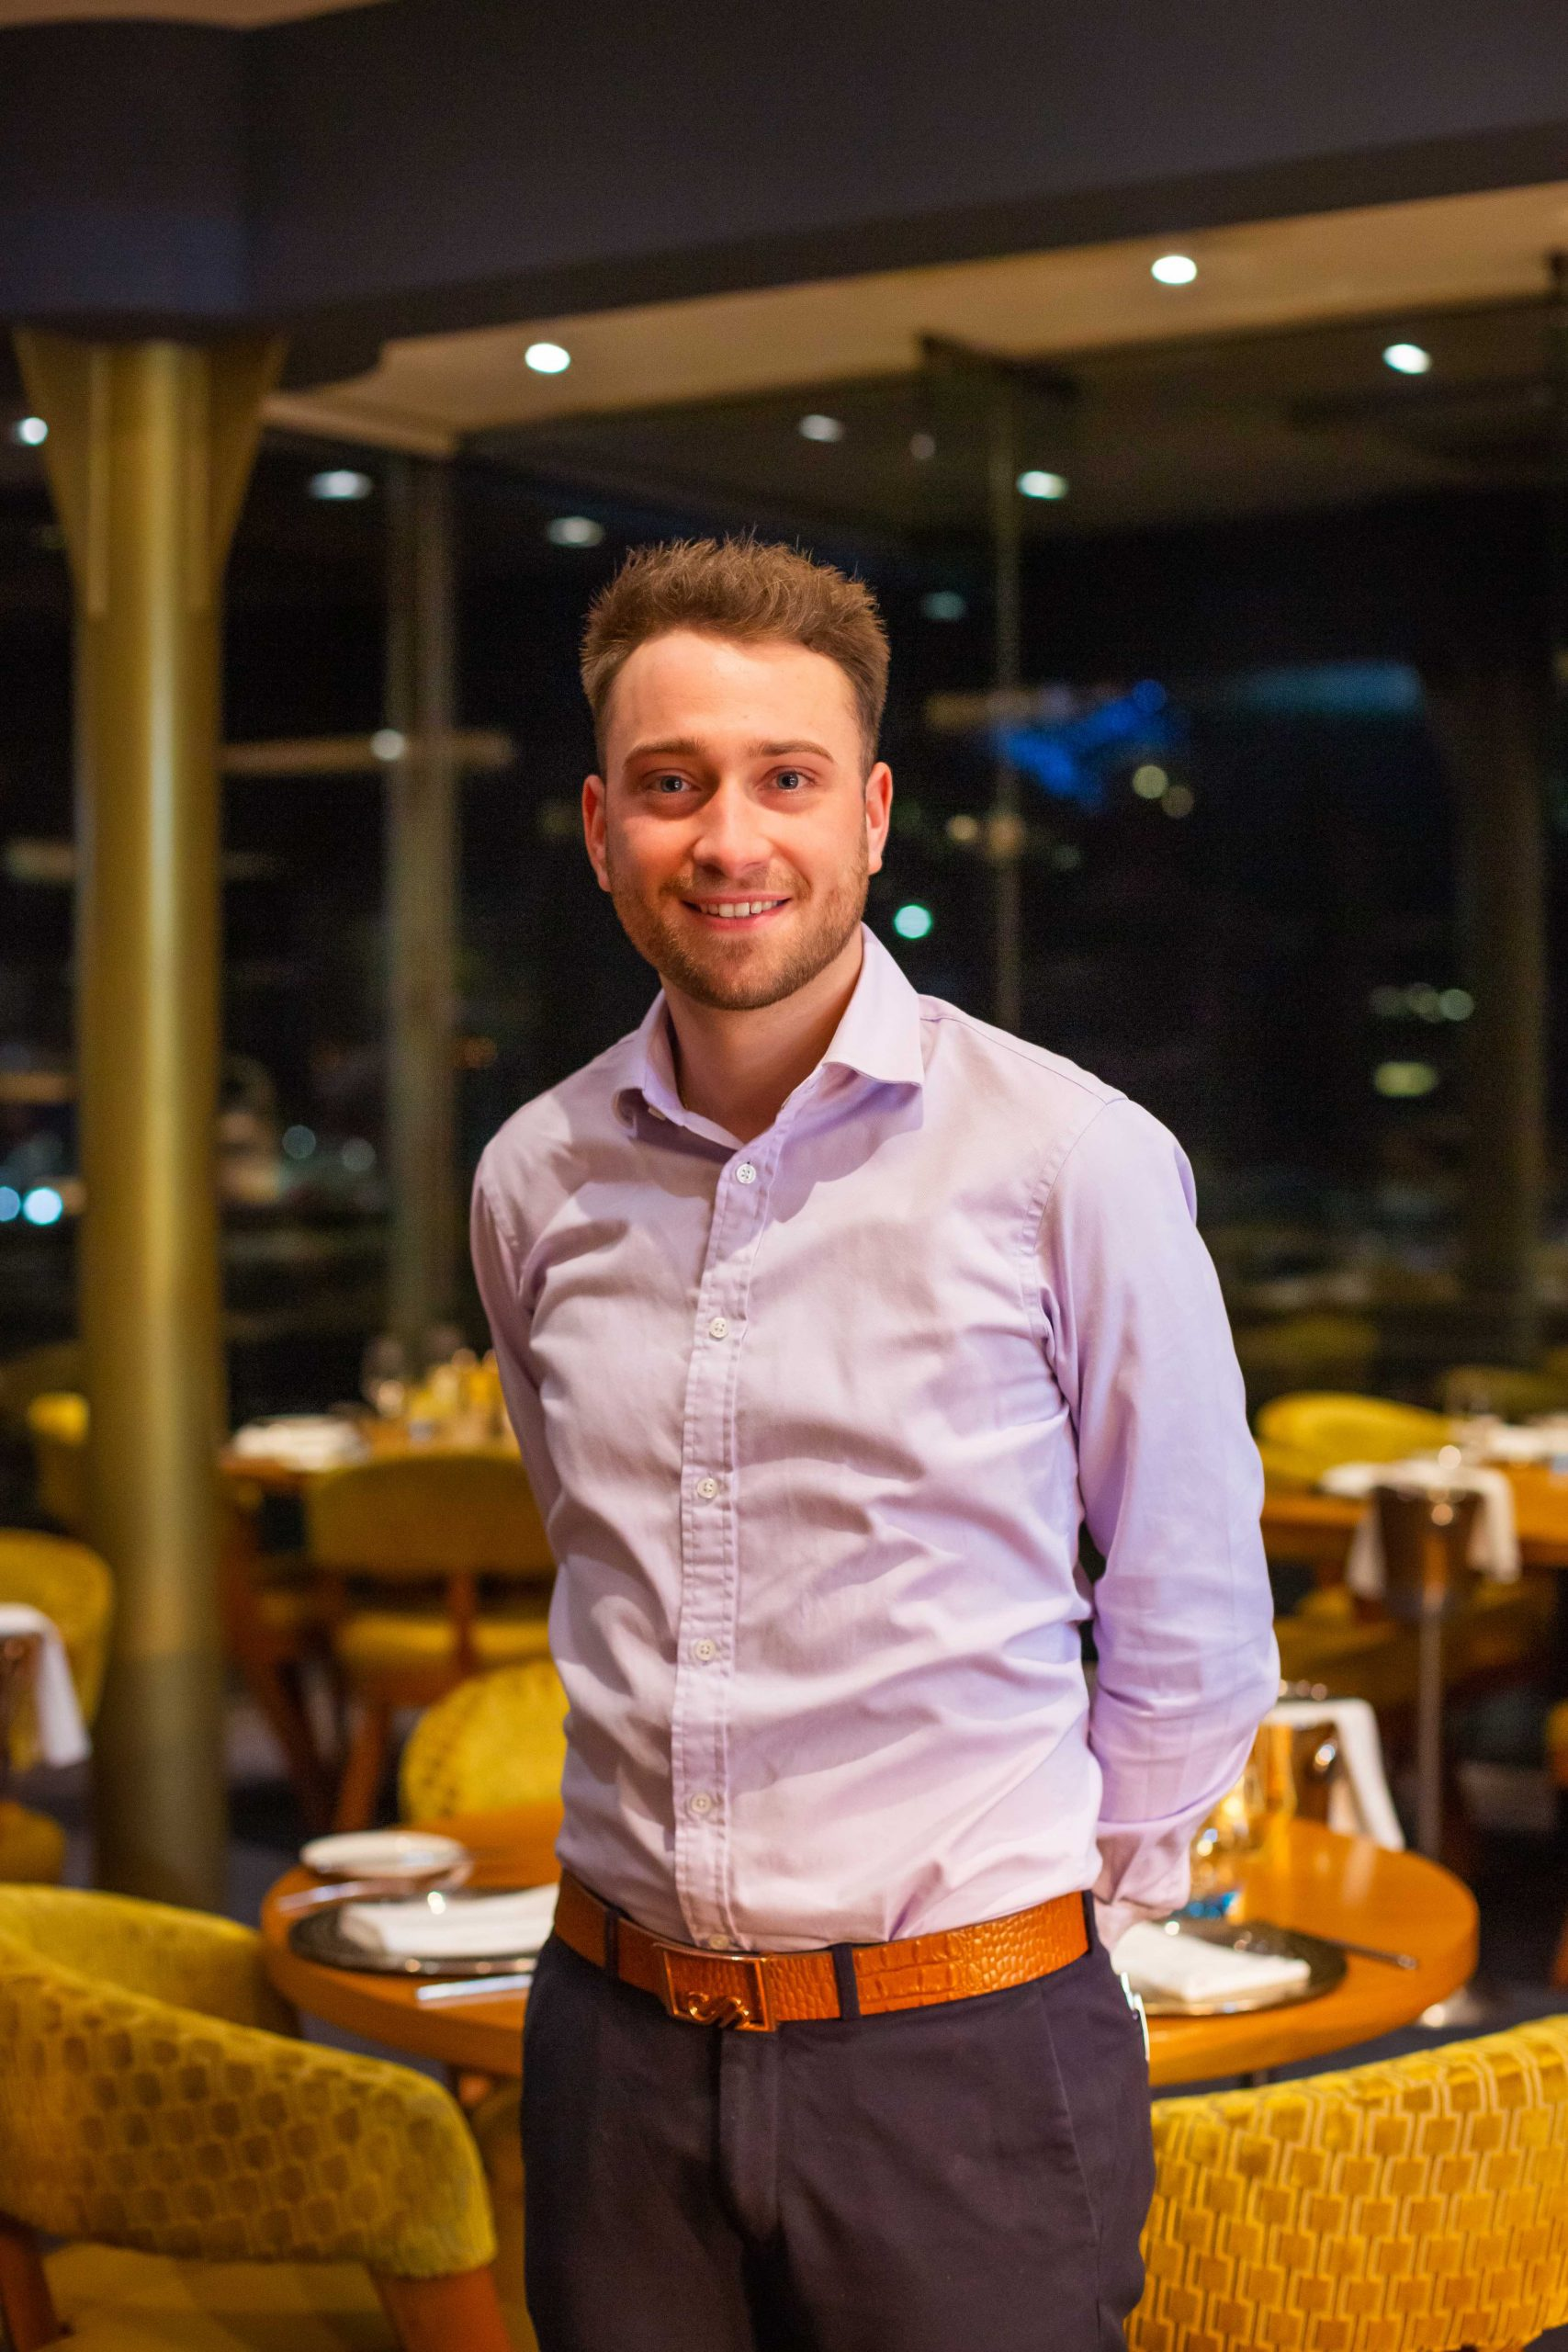 Stefano Pieraccini, Director of The Seafood Ristorante in St Andrews